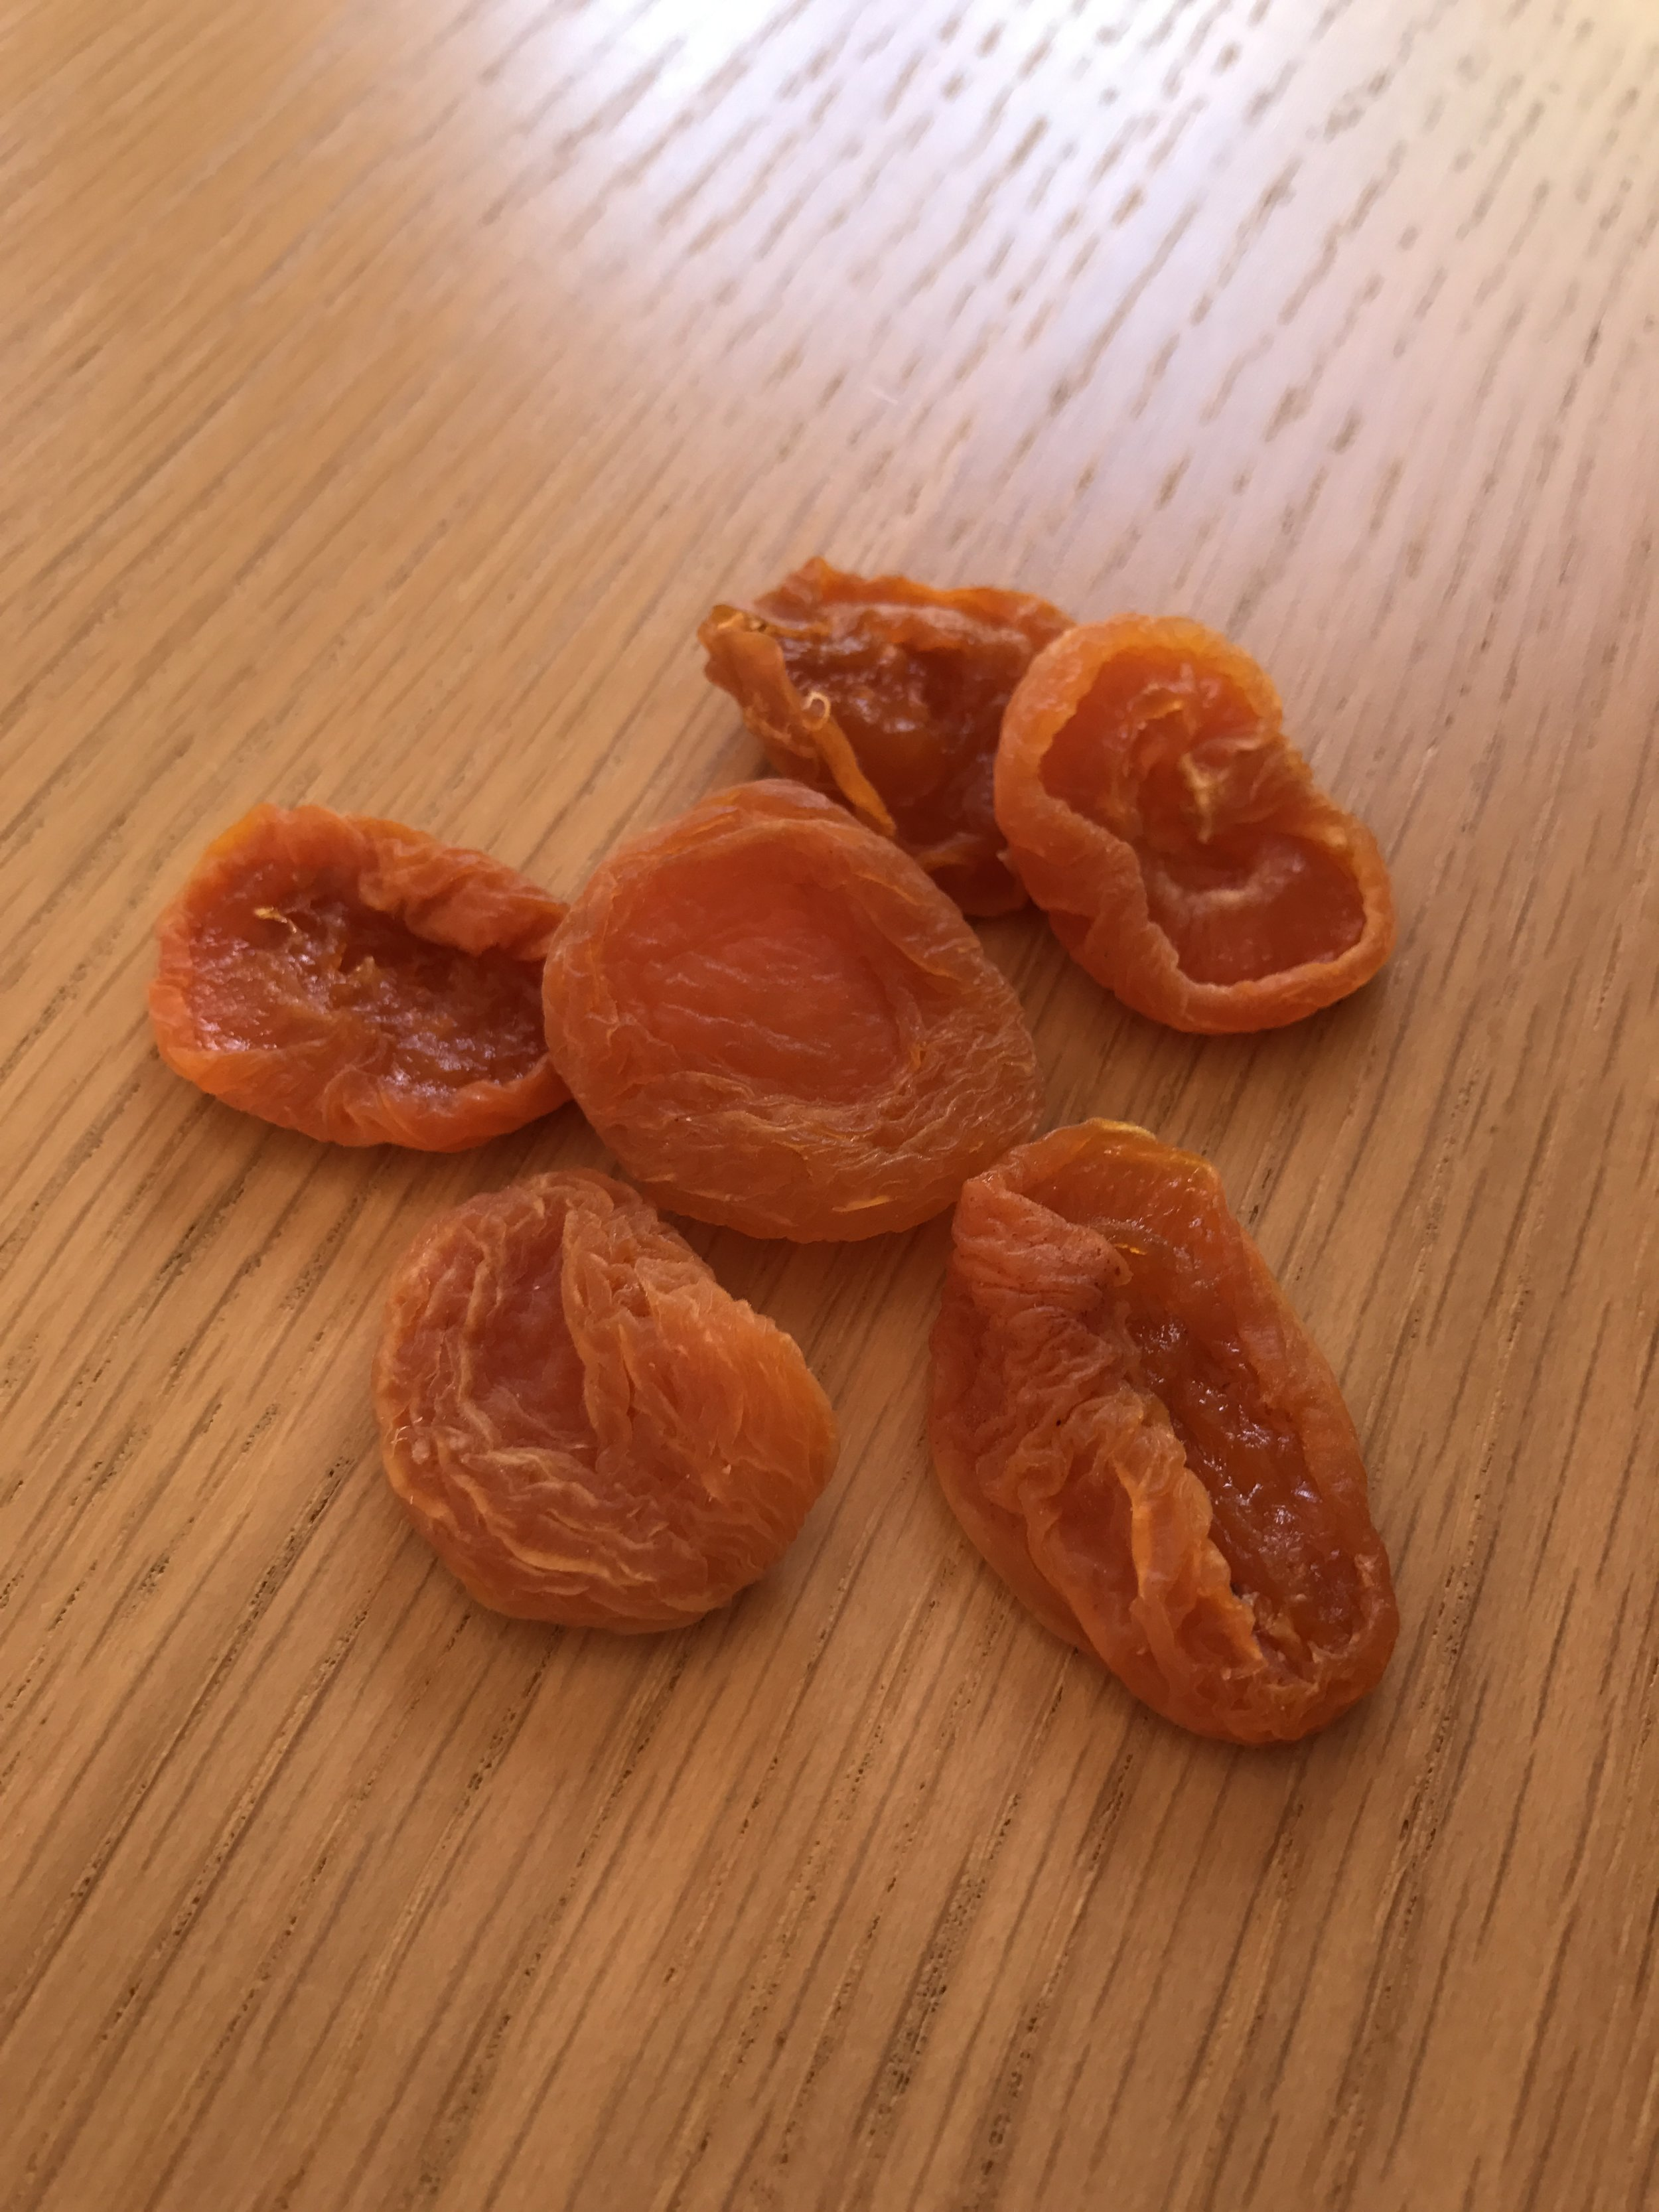 A serve of dried apricots